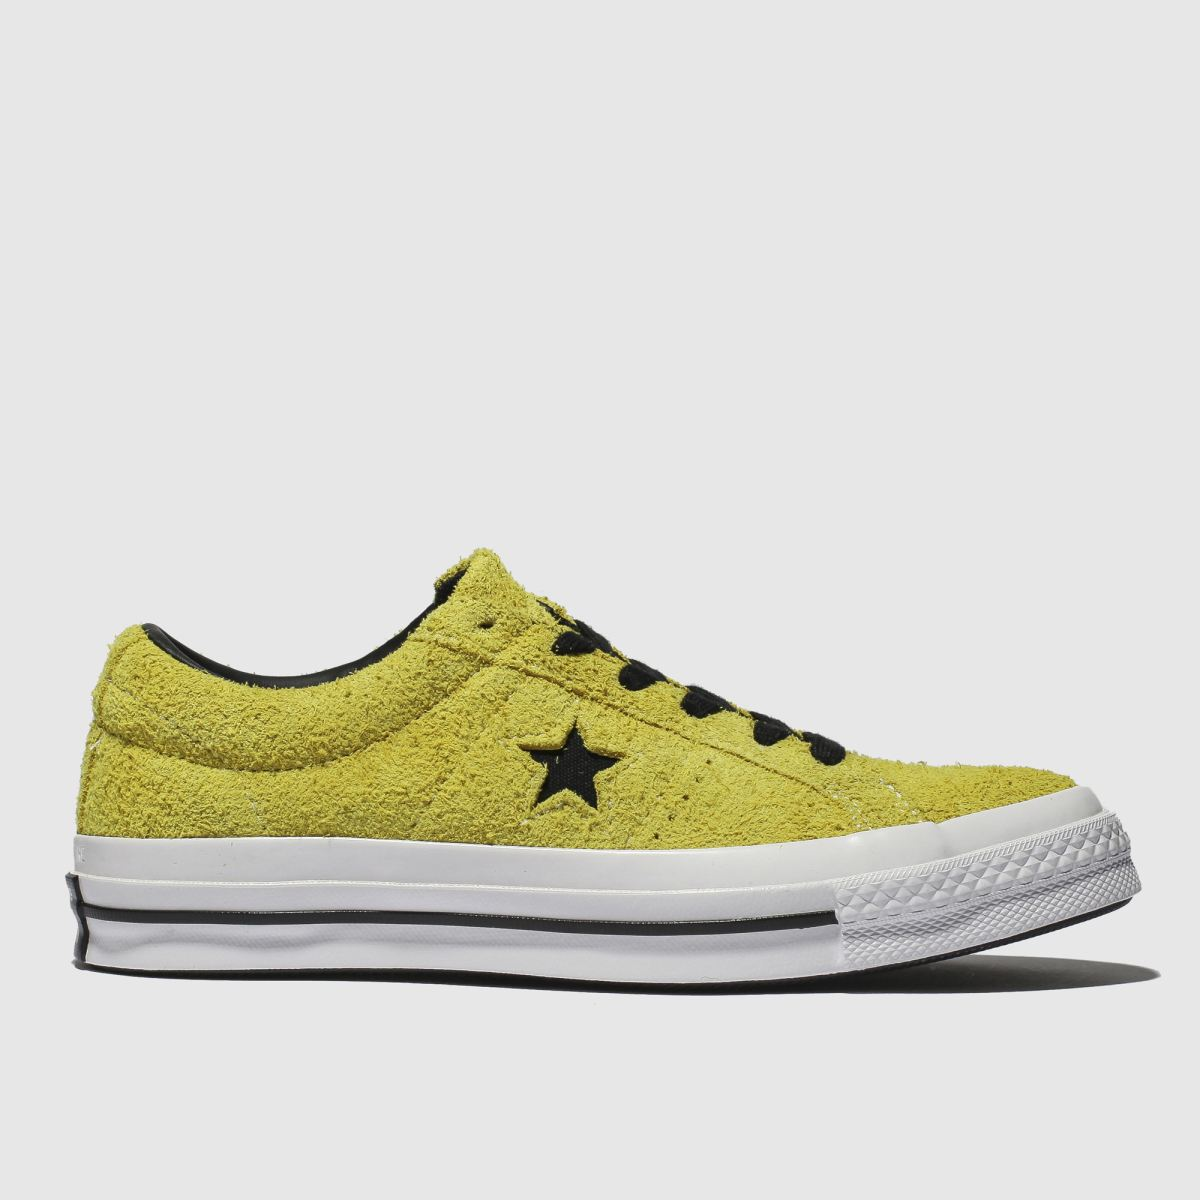 Converse Yellow One Star Ox Suede Trainers